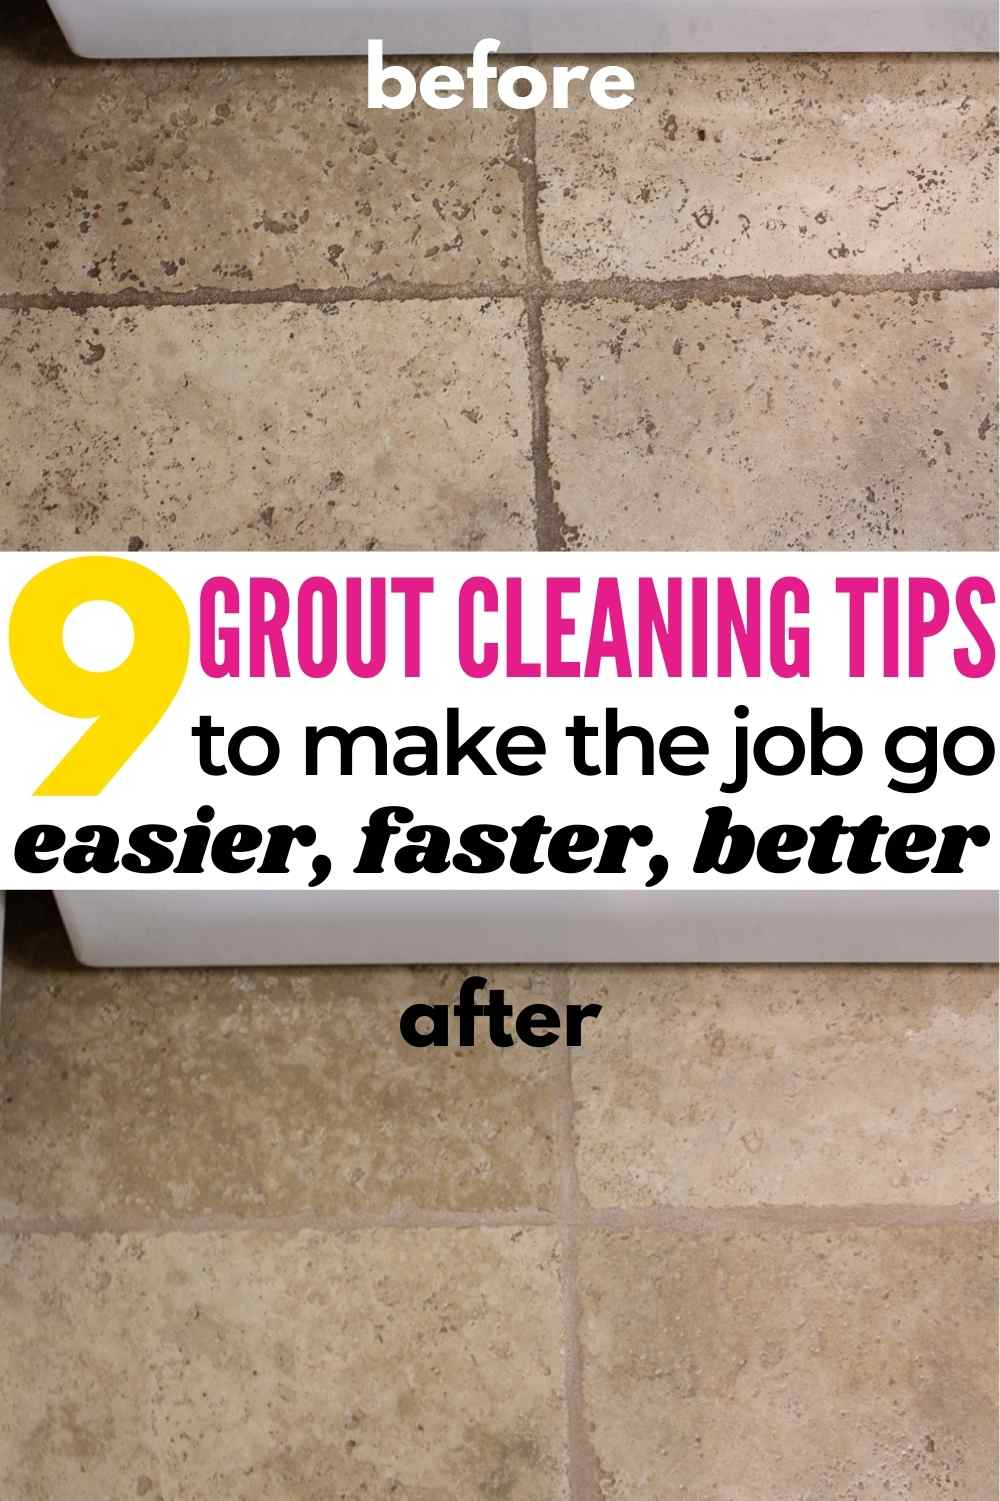 9 grout cleaning tips to make the job go easier, faster, better with before and after image of kitchen floor grout before and after cleaning